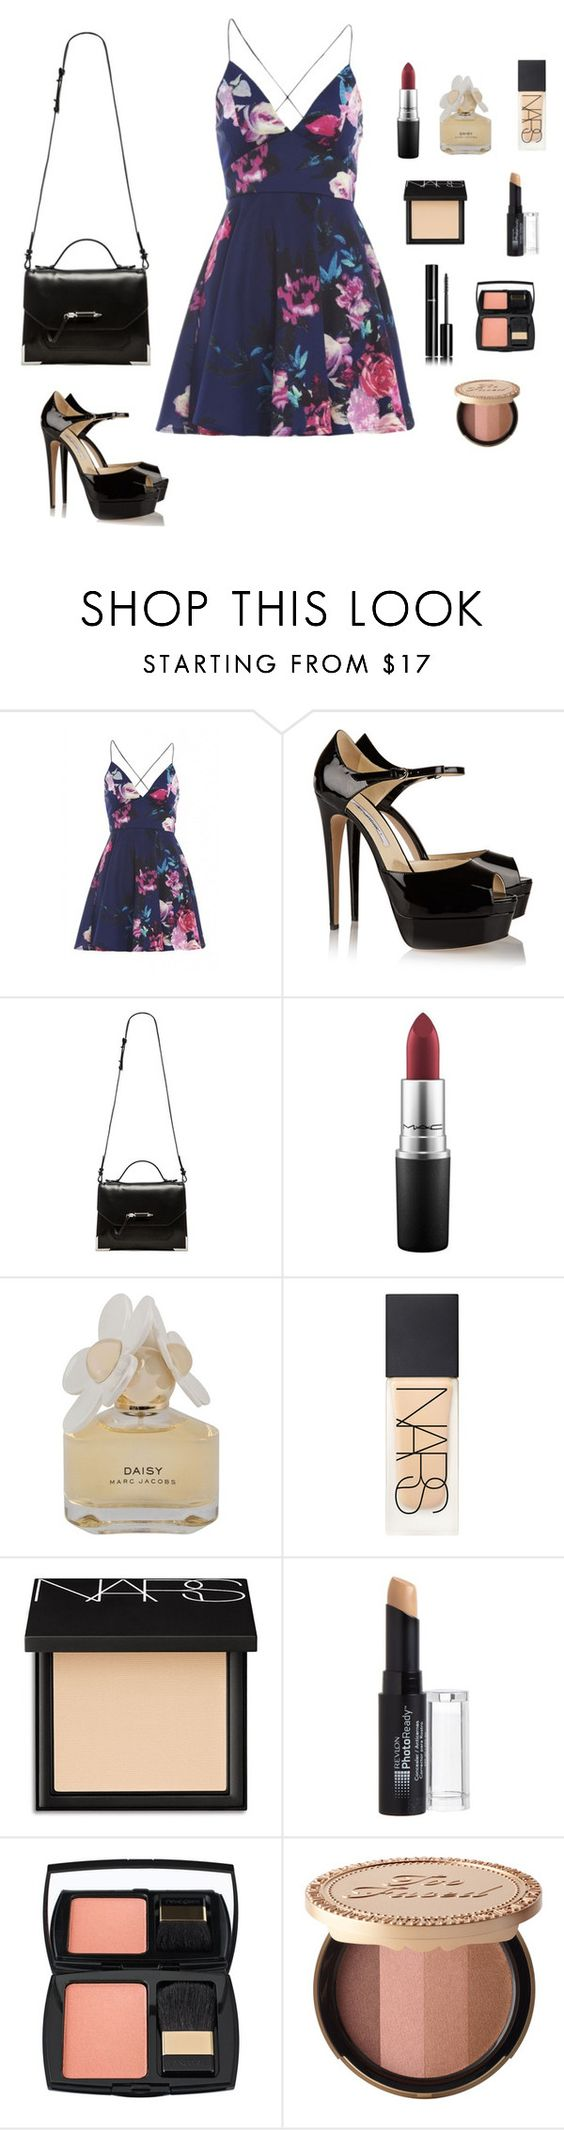 """""""M"""" by butnotperfect ❤ liked on Polyvore featuring AX Paris, Brian Atwood, Mackage, MAC Cosmetics, Marc by Marc Jacobs, NARS Cosmetics, Revlon, Chanel, Lancôme and Too Faced Cosmetics"""